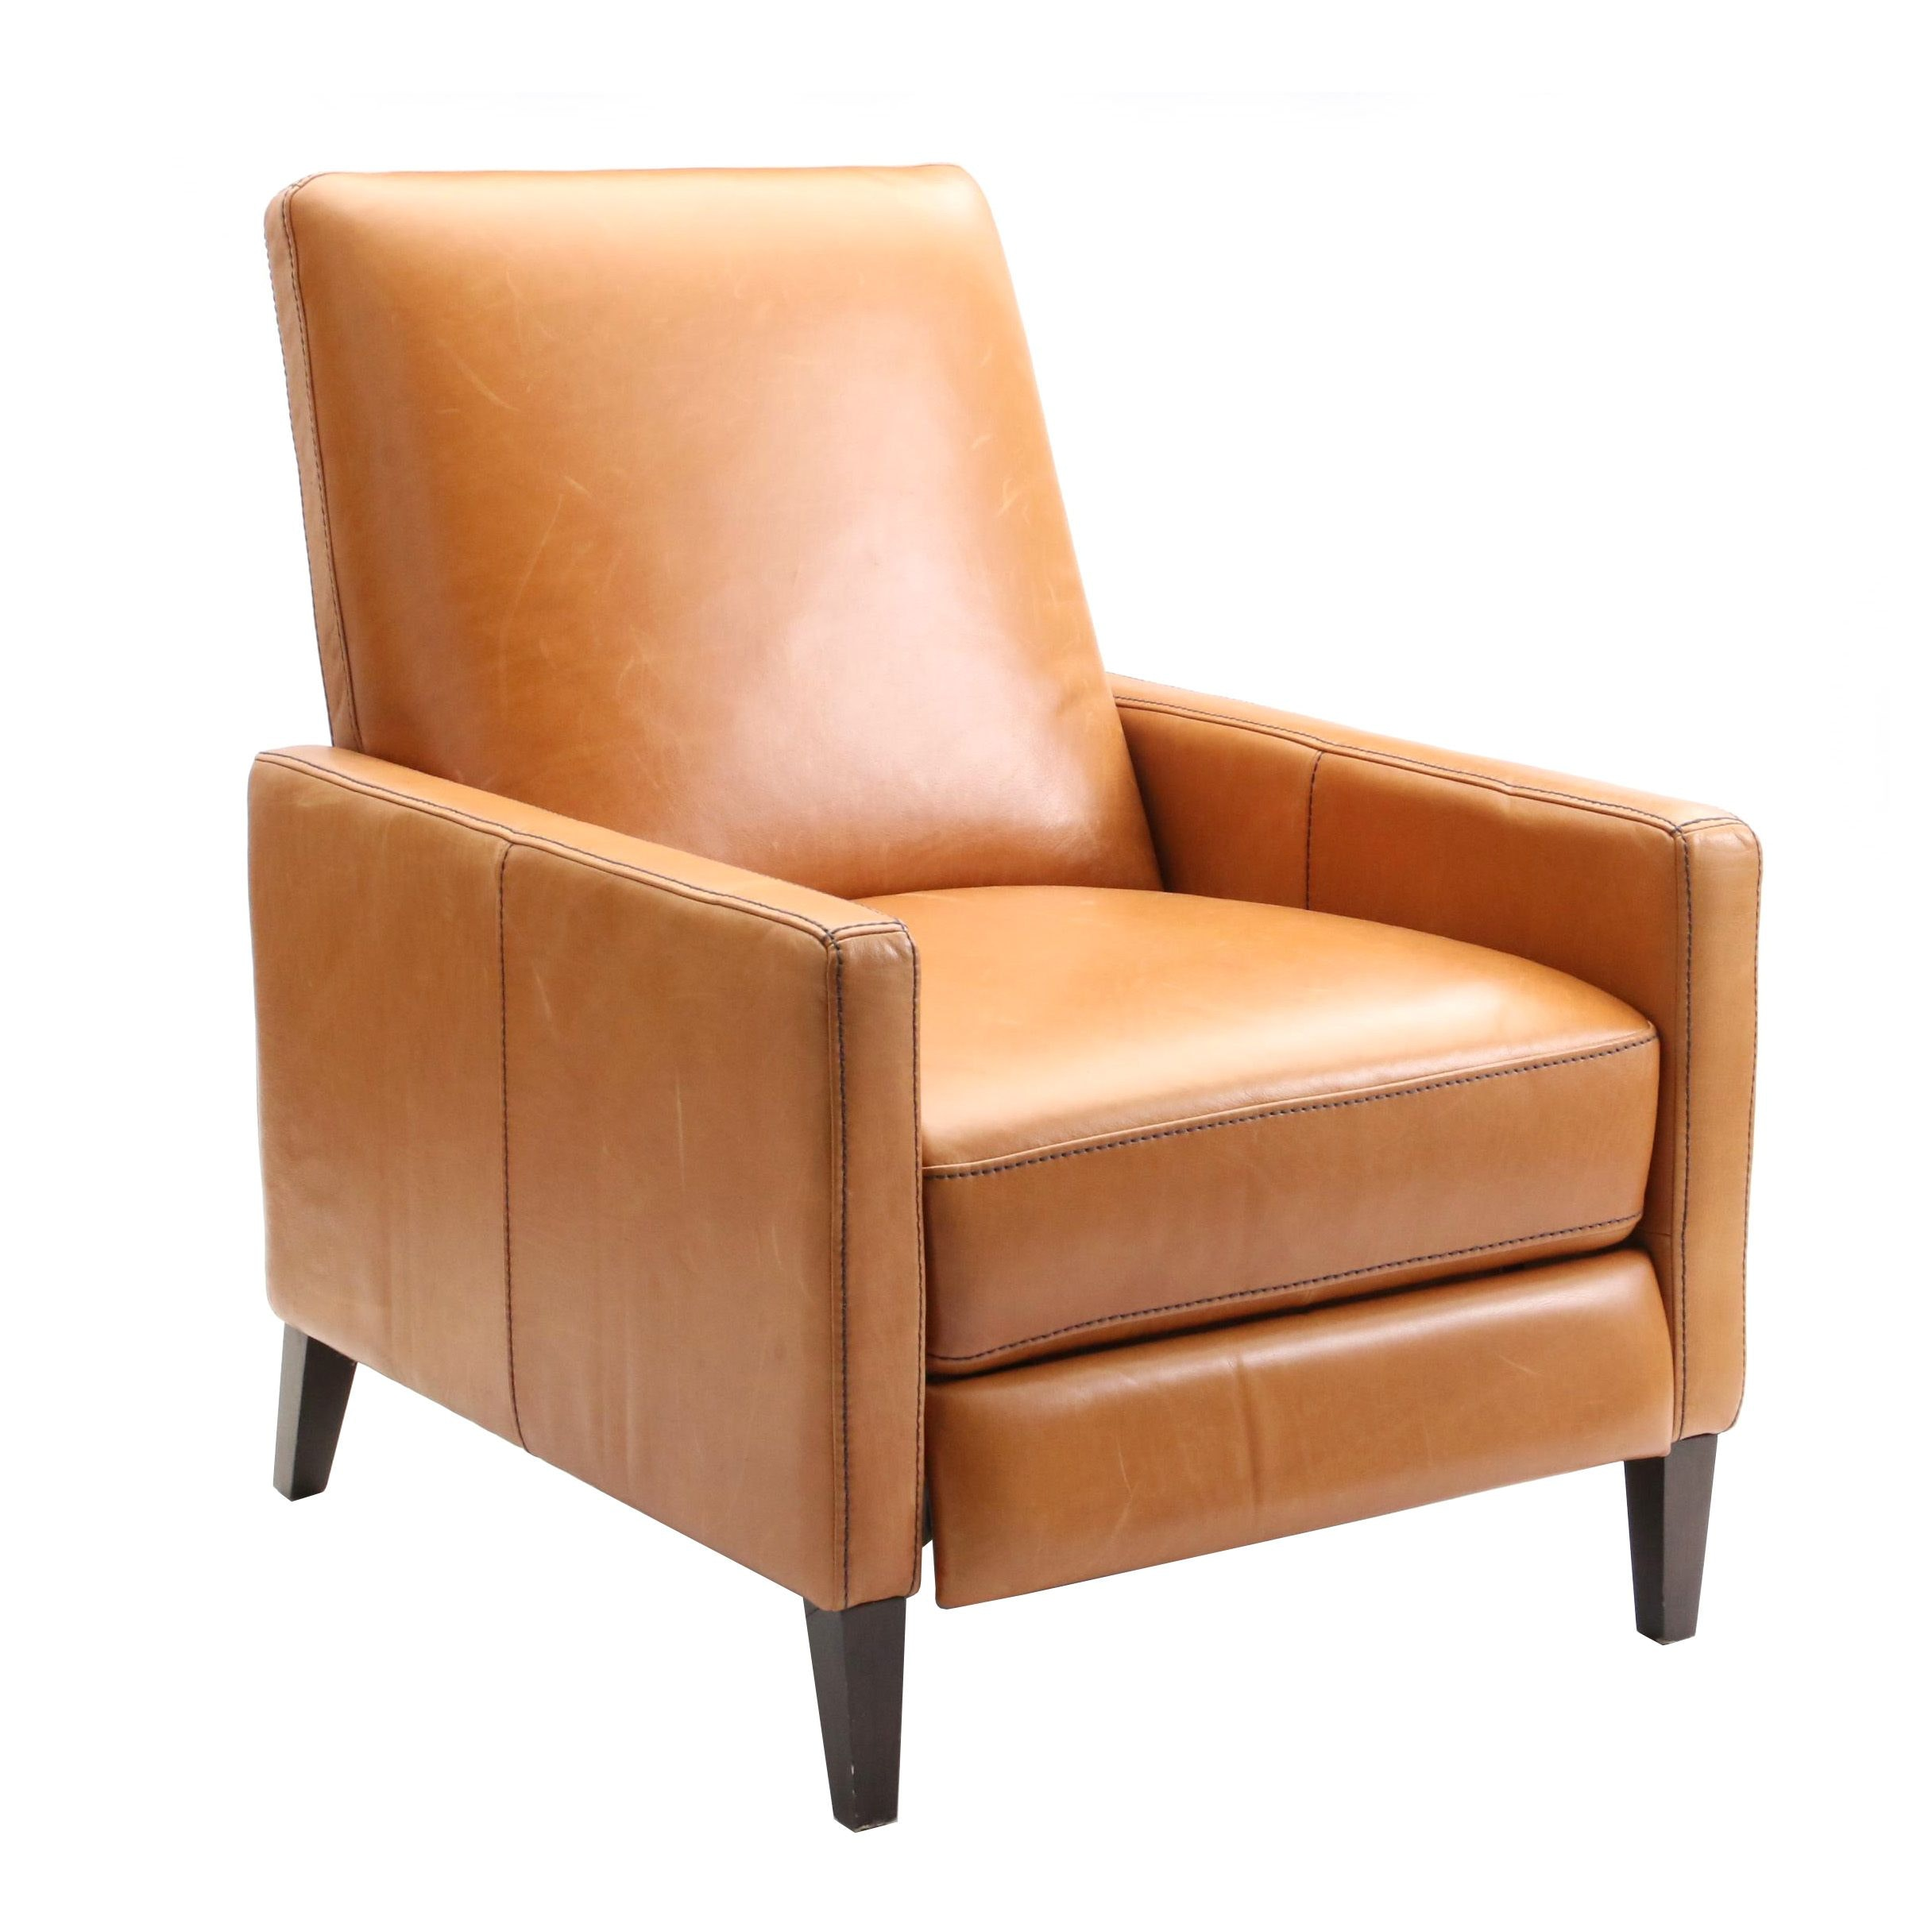 "Contemporary West Elm ""Sedgwick"" Leather Recliner"